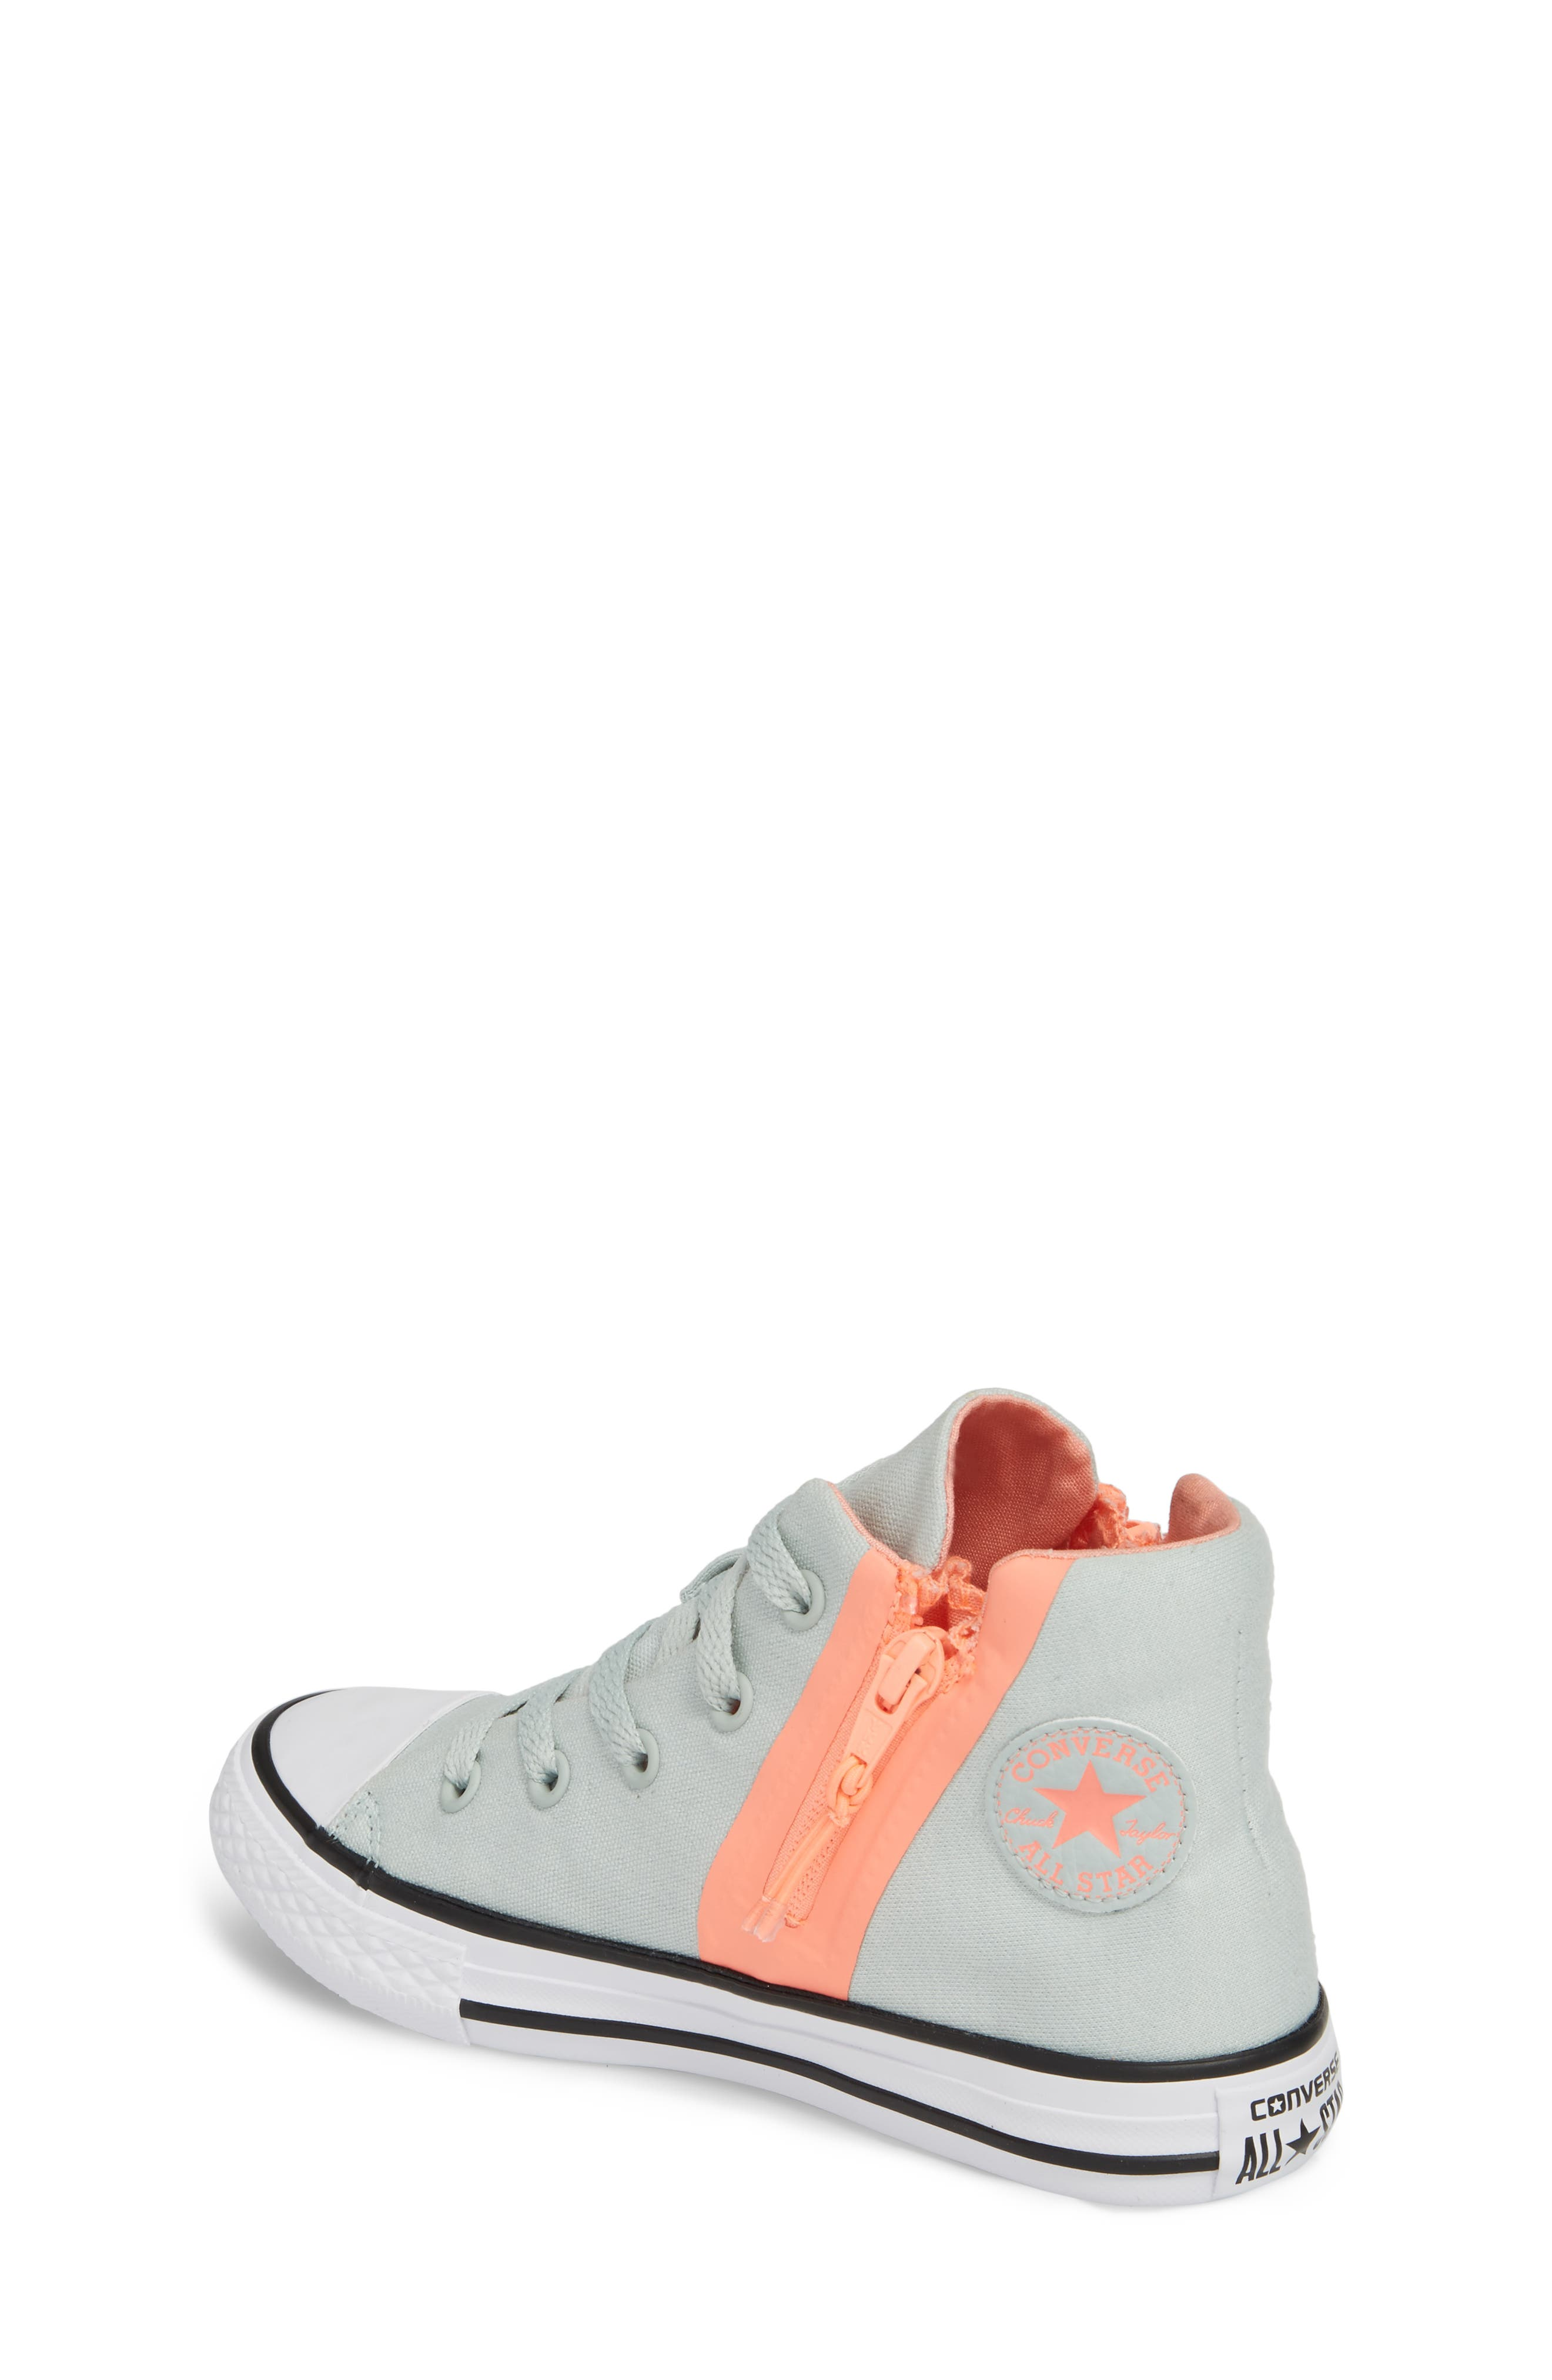 Chuck Taylor<sup>®</sup> All Star<sup>®</sup> Sport Zip High Top Sneaker,                             Alternate thumbnail 2, color,                             Dried Bamboo